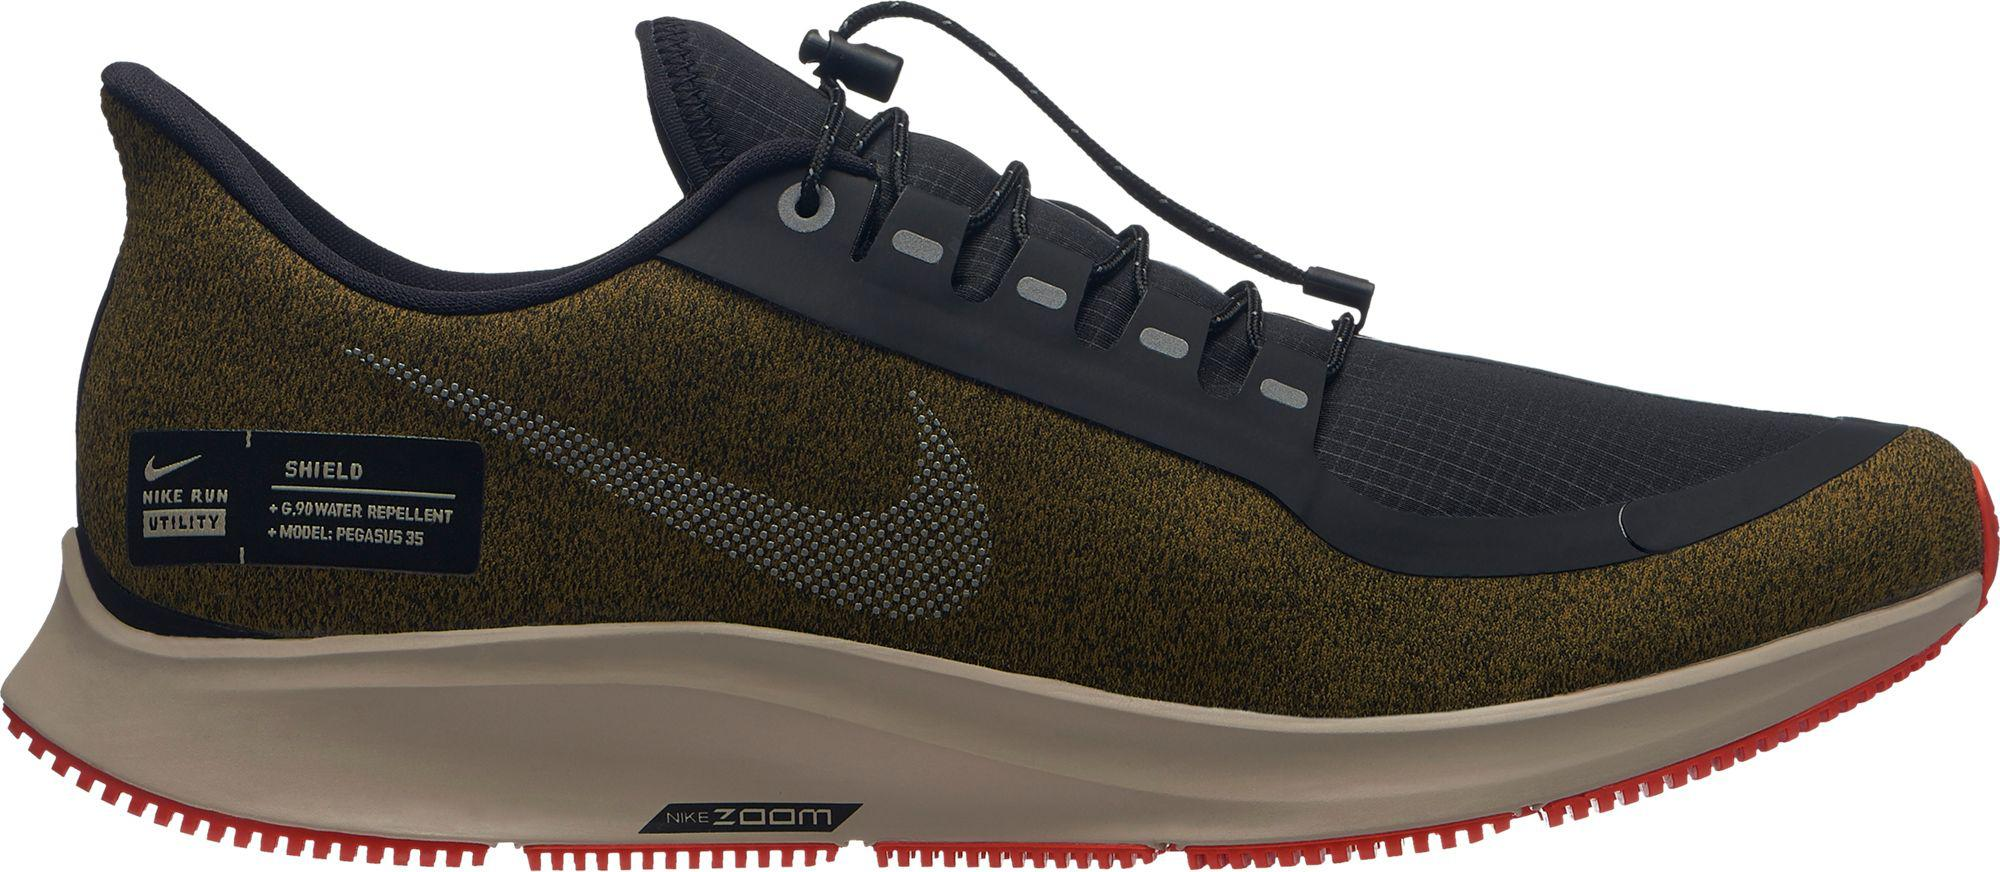 aab25cd719e0a Lyst - Nike Air Zoom Pegasus 35 Shield Running Shoes in Black for Men